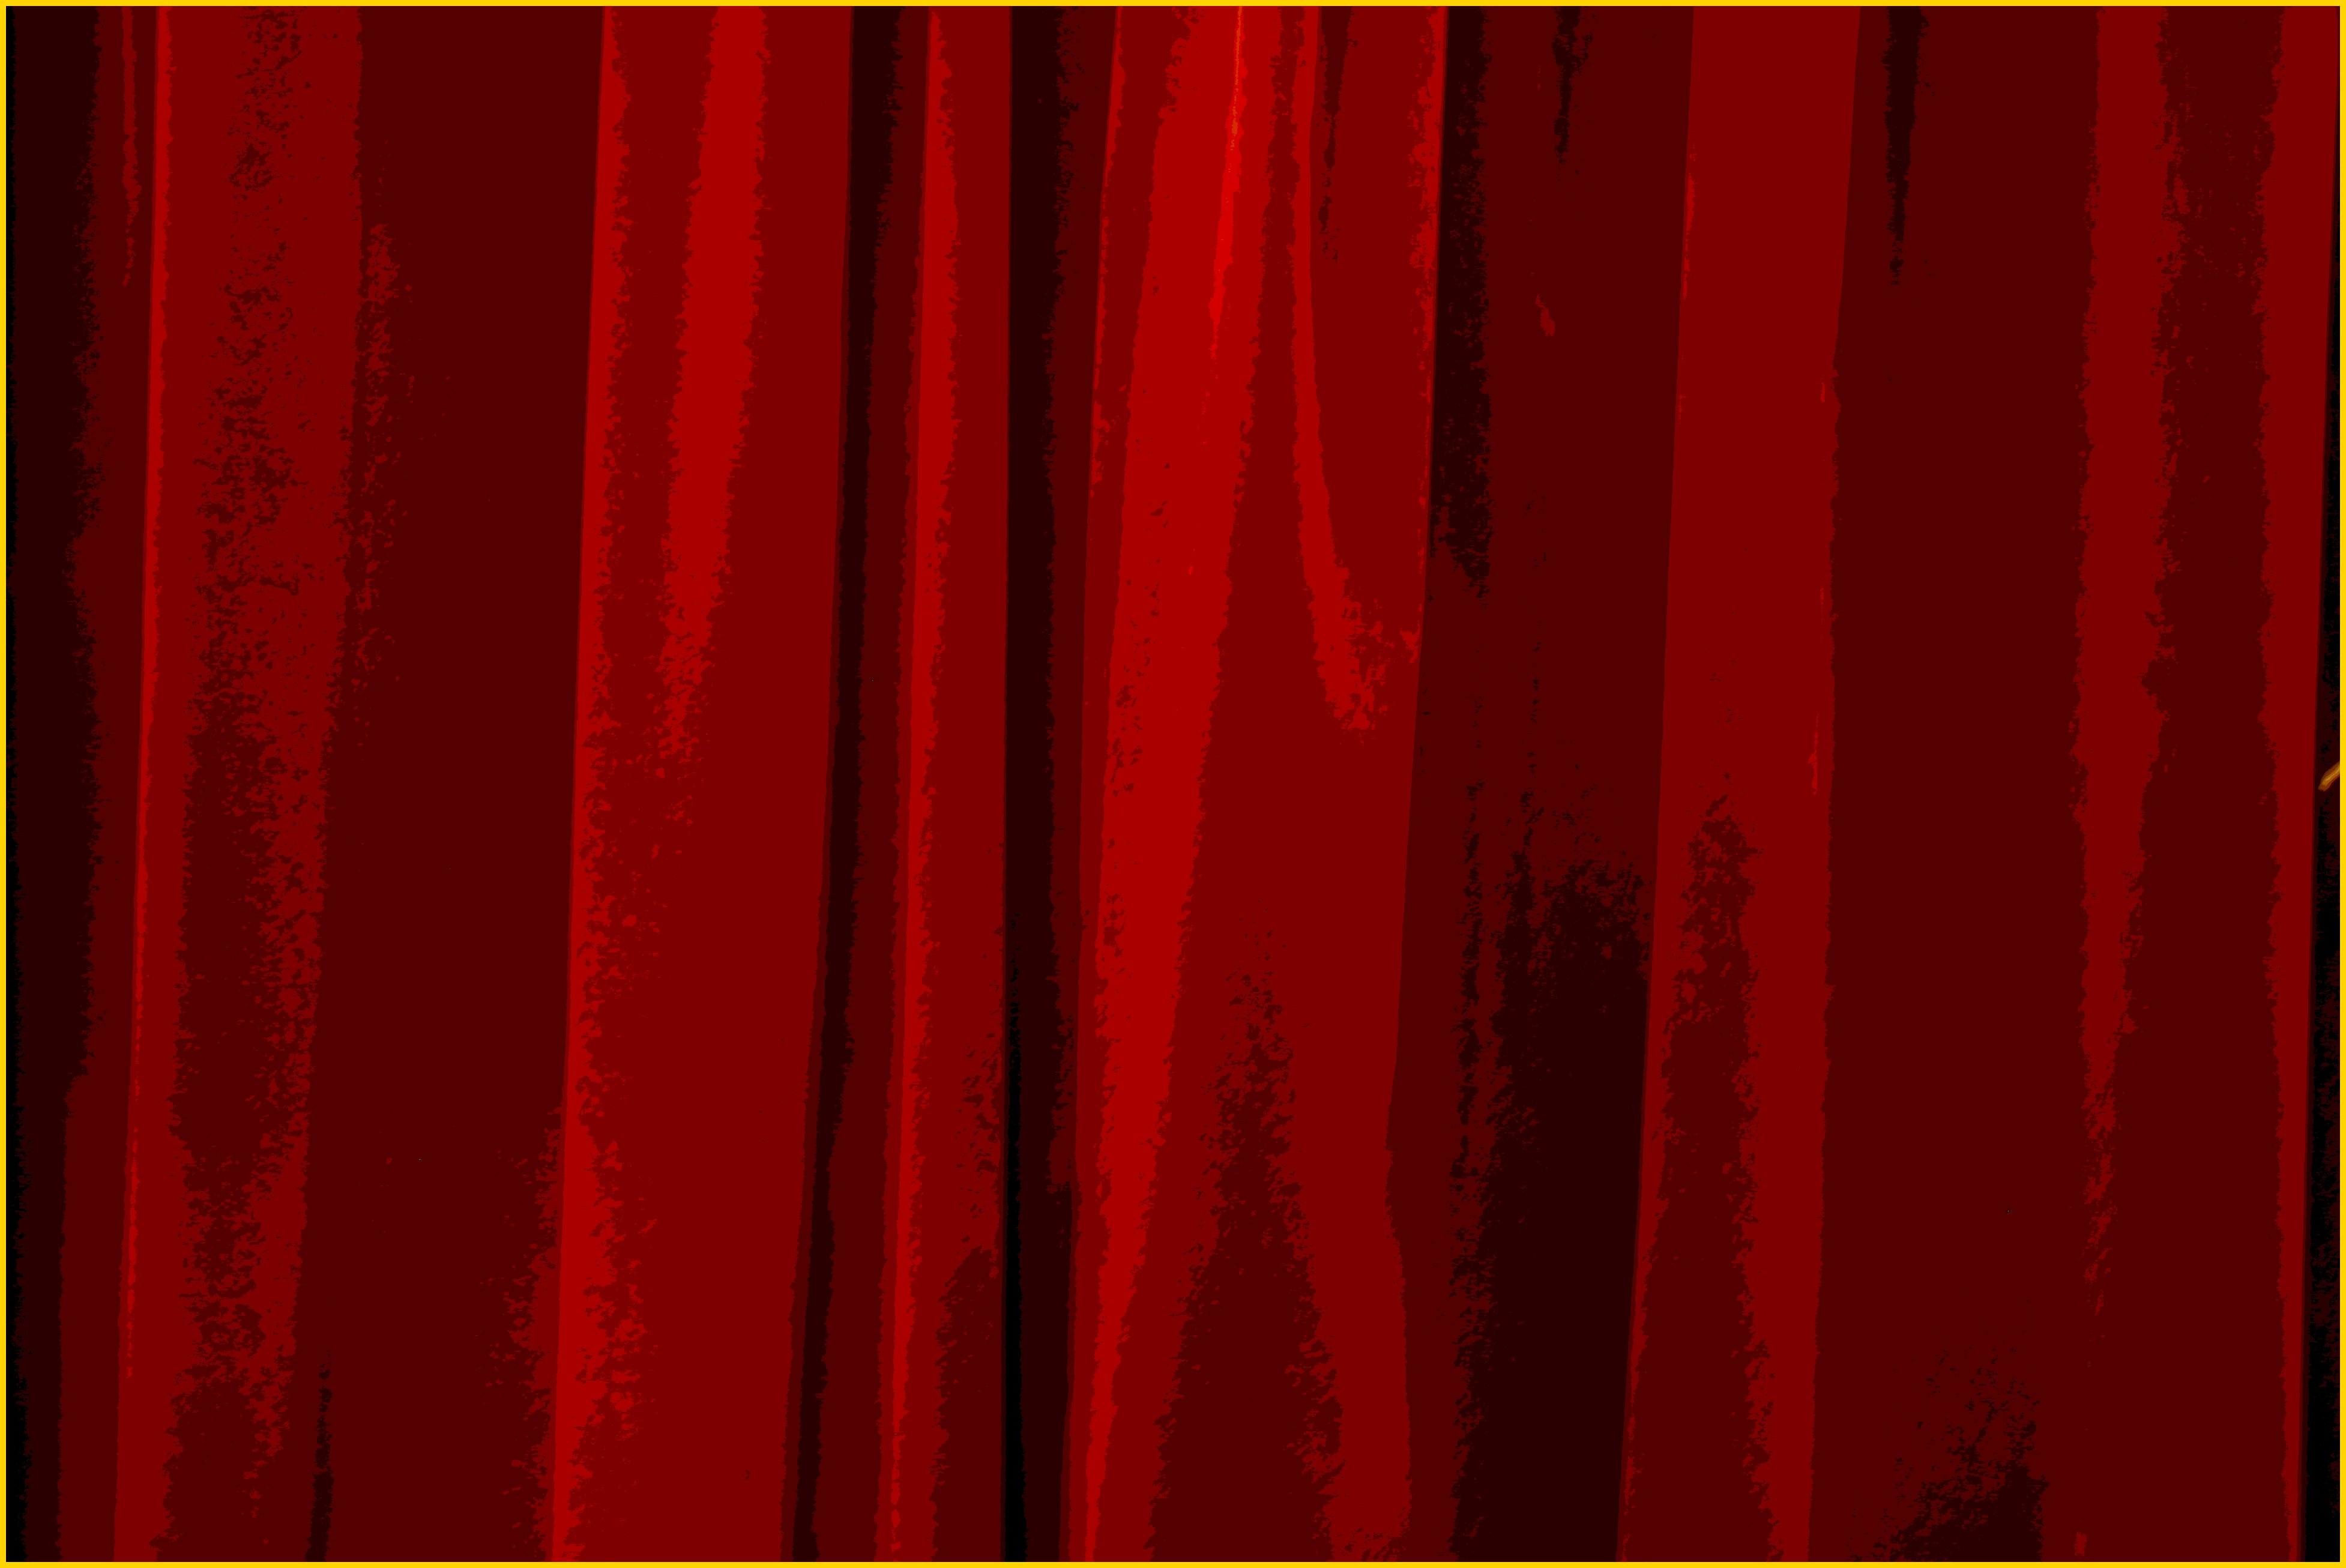 Living room curtains red - Velvet Curtains Living Room Gallery Red Curtains Red Curtains Red Curtains Red Curtains Download